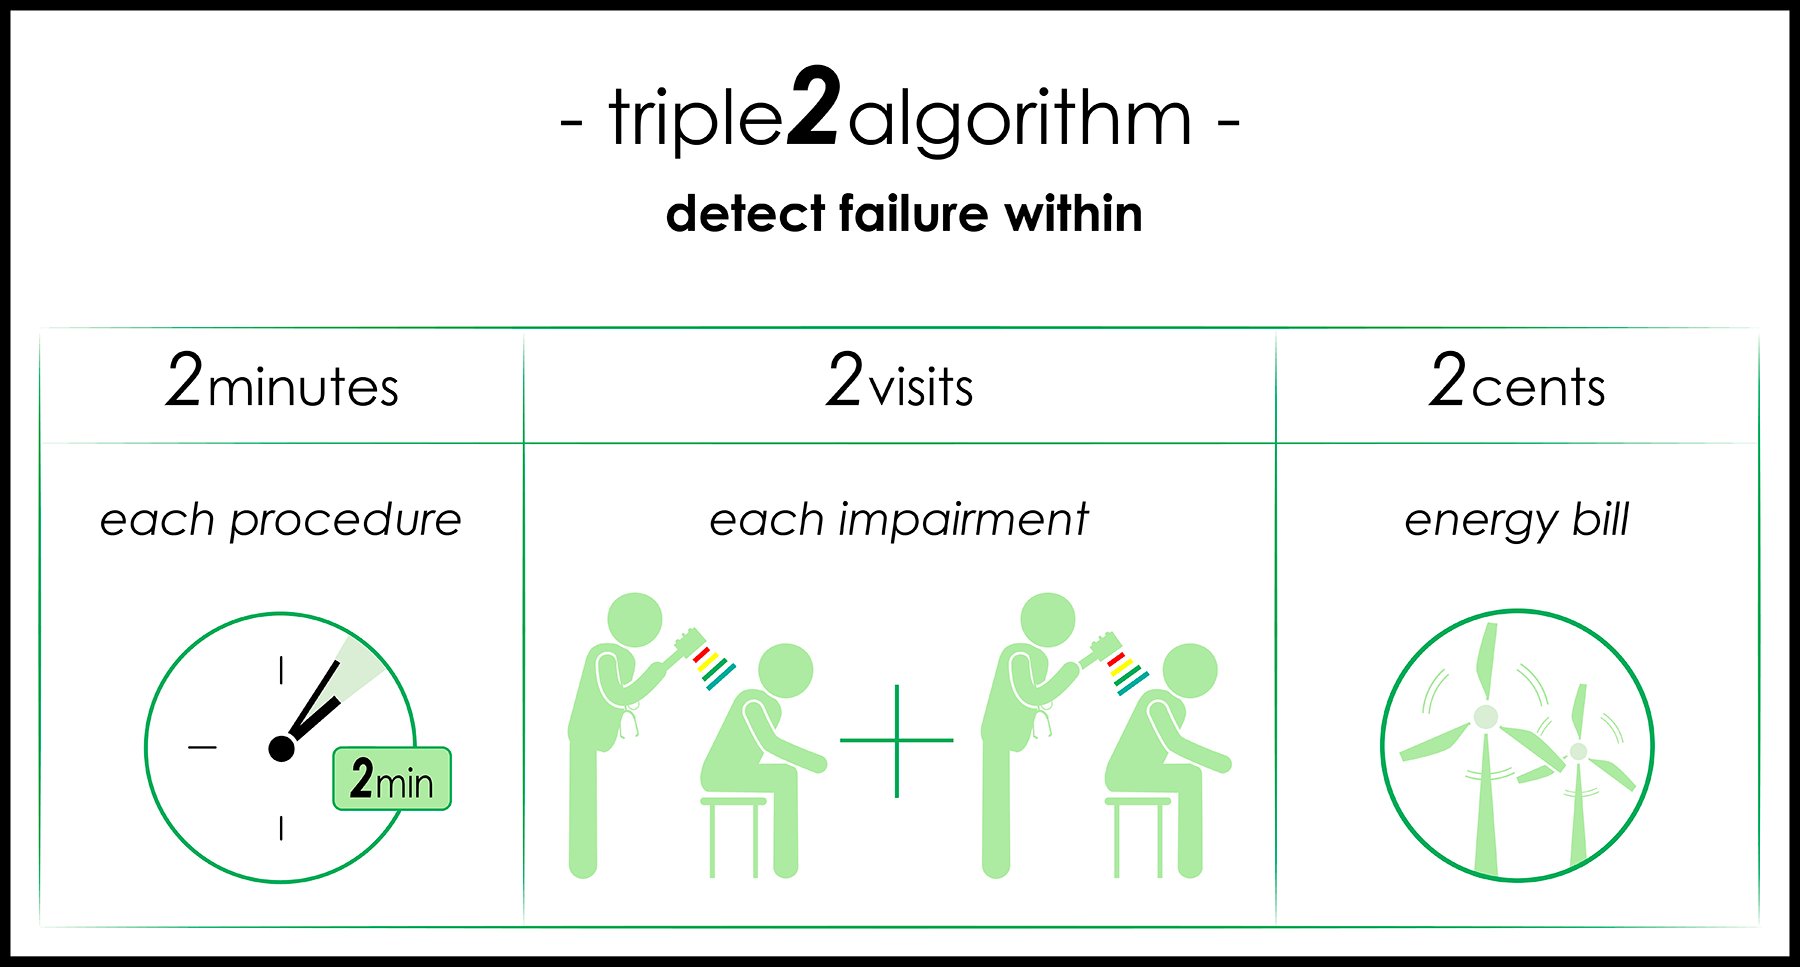 PhotoMed's Triple 2 Algorithm improves the efficiency of therapy using the   Vari-Chrome® Pro   alone or with the   Instant Verification System  ™. It's easier to detect a failure to respond than to measure success for treatment-resistant pain or functional impairments